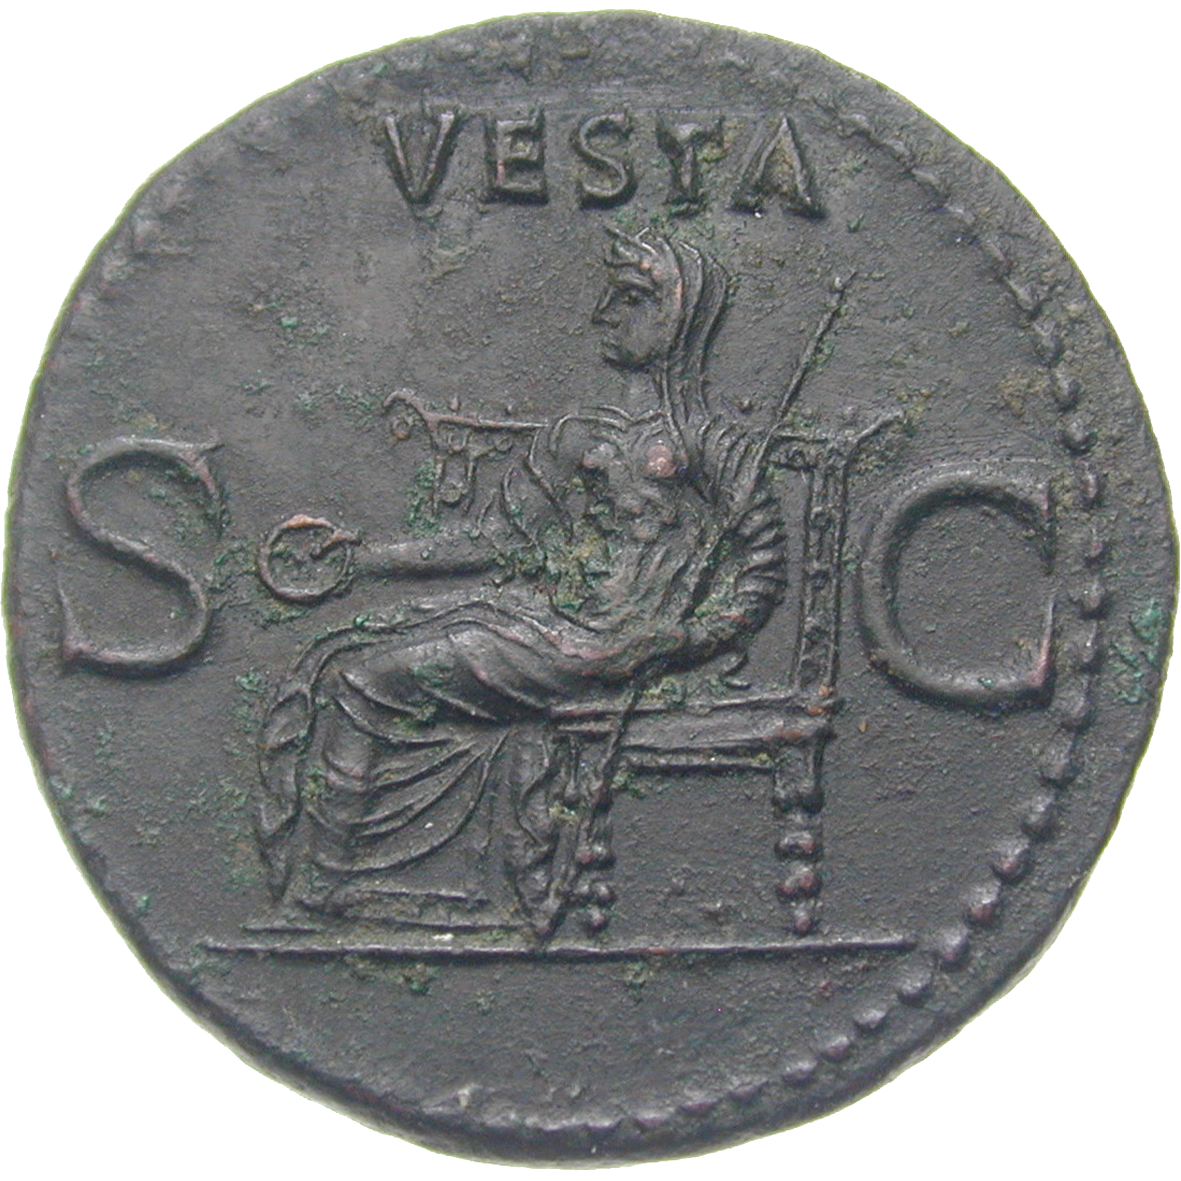 Roman Empire, Gaius, As (reverse)